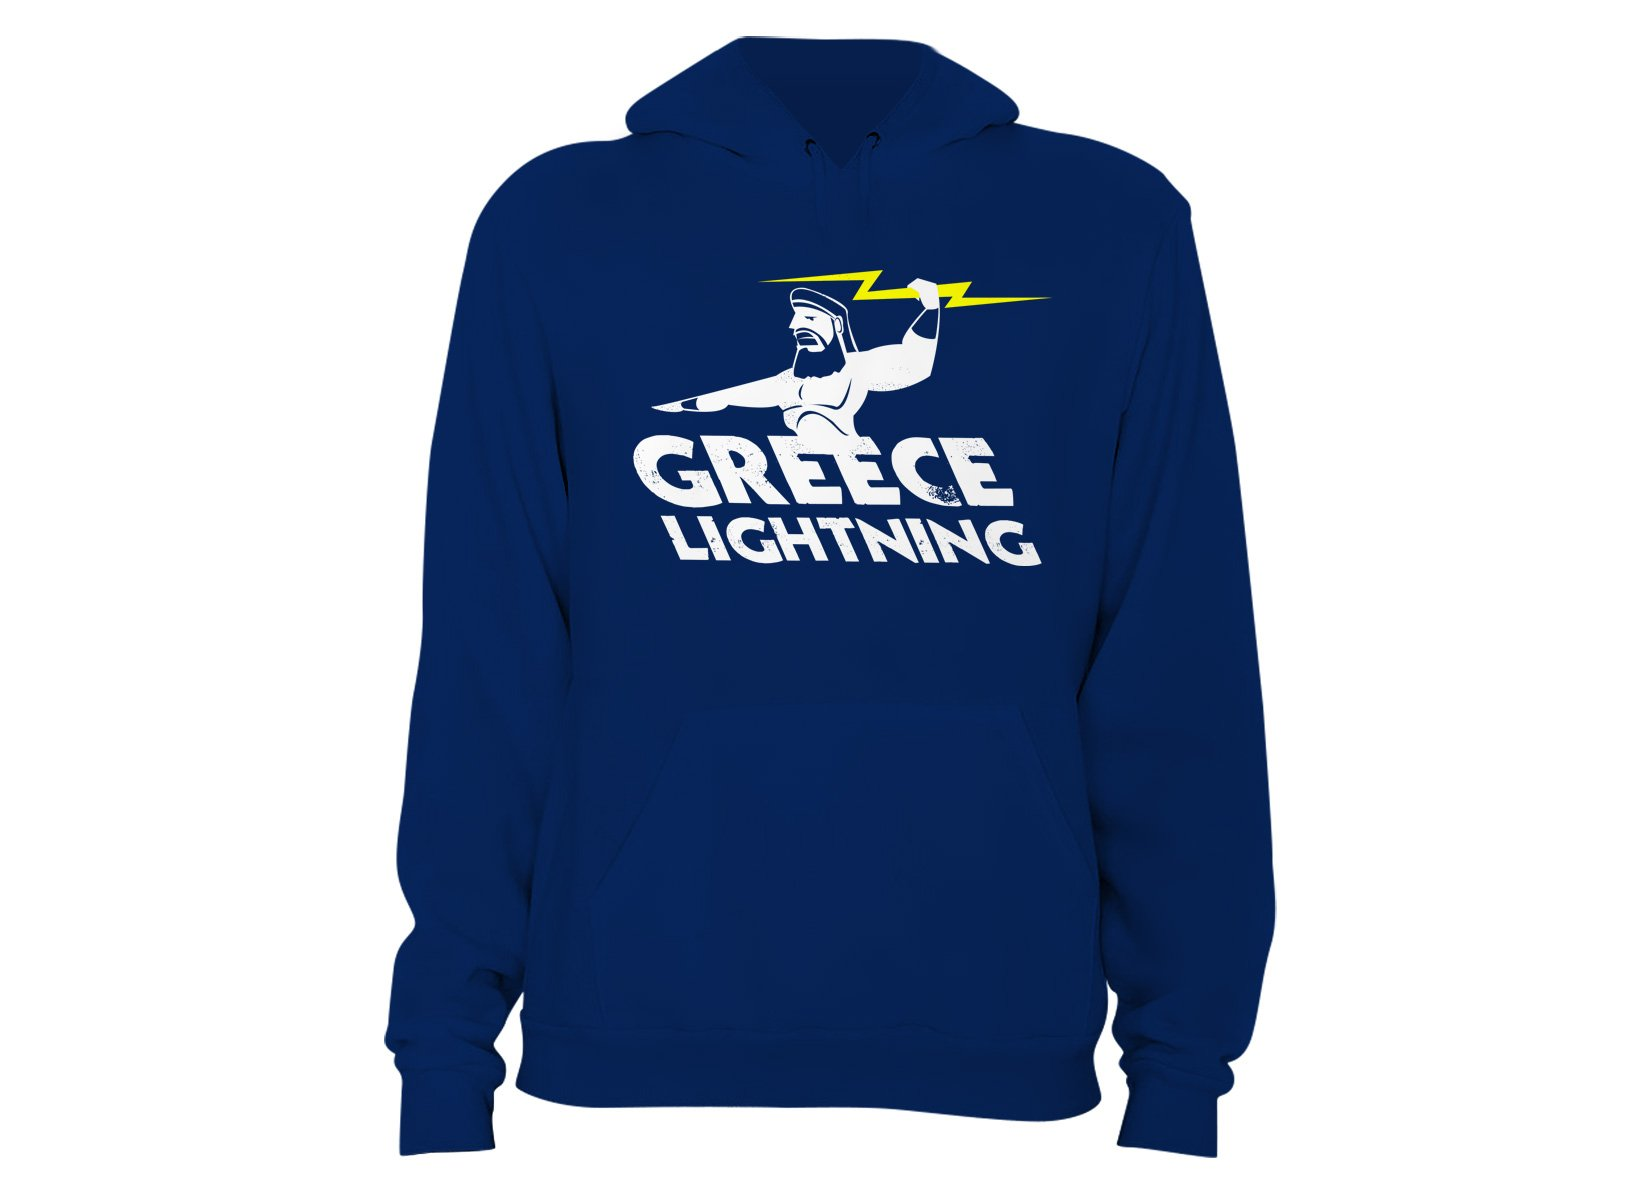 Greece Lightning on Hoodie